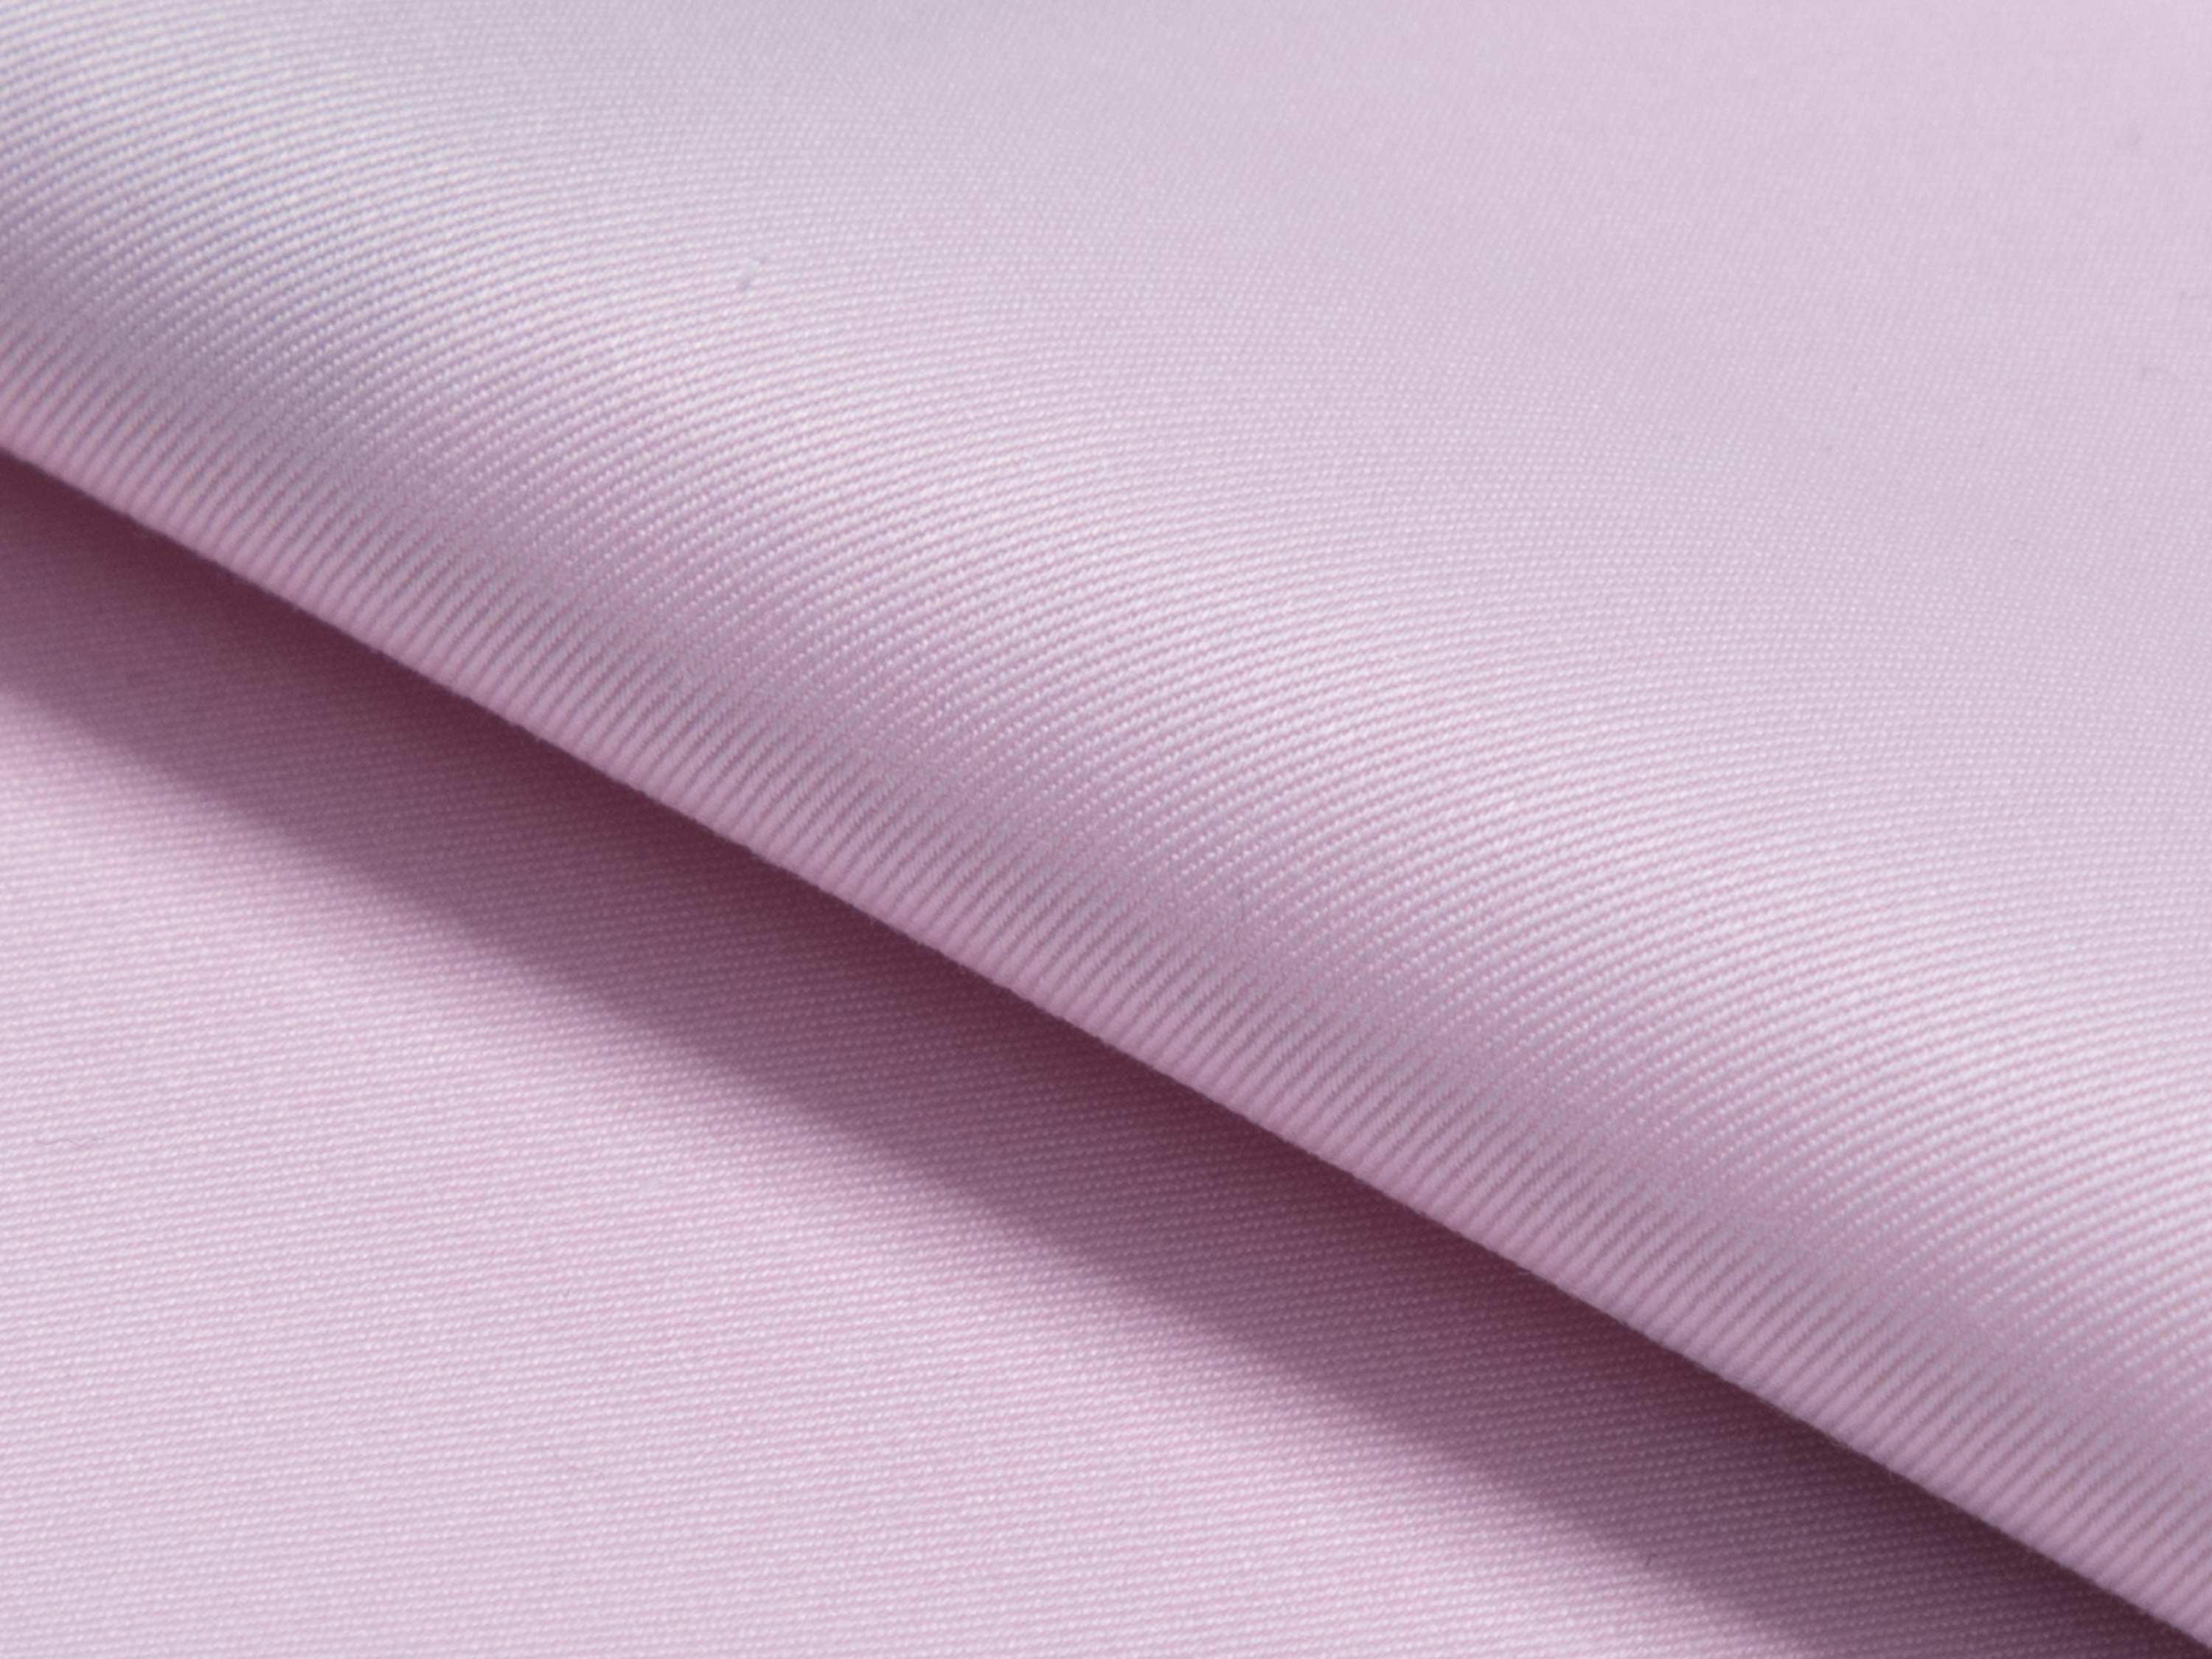 Buy tailor made shirts online - MAYFAIR (NEW) - Twill Pink